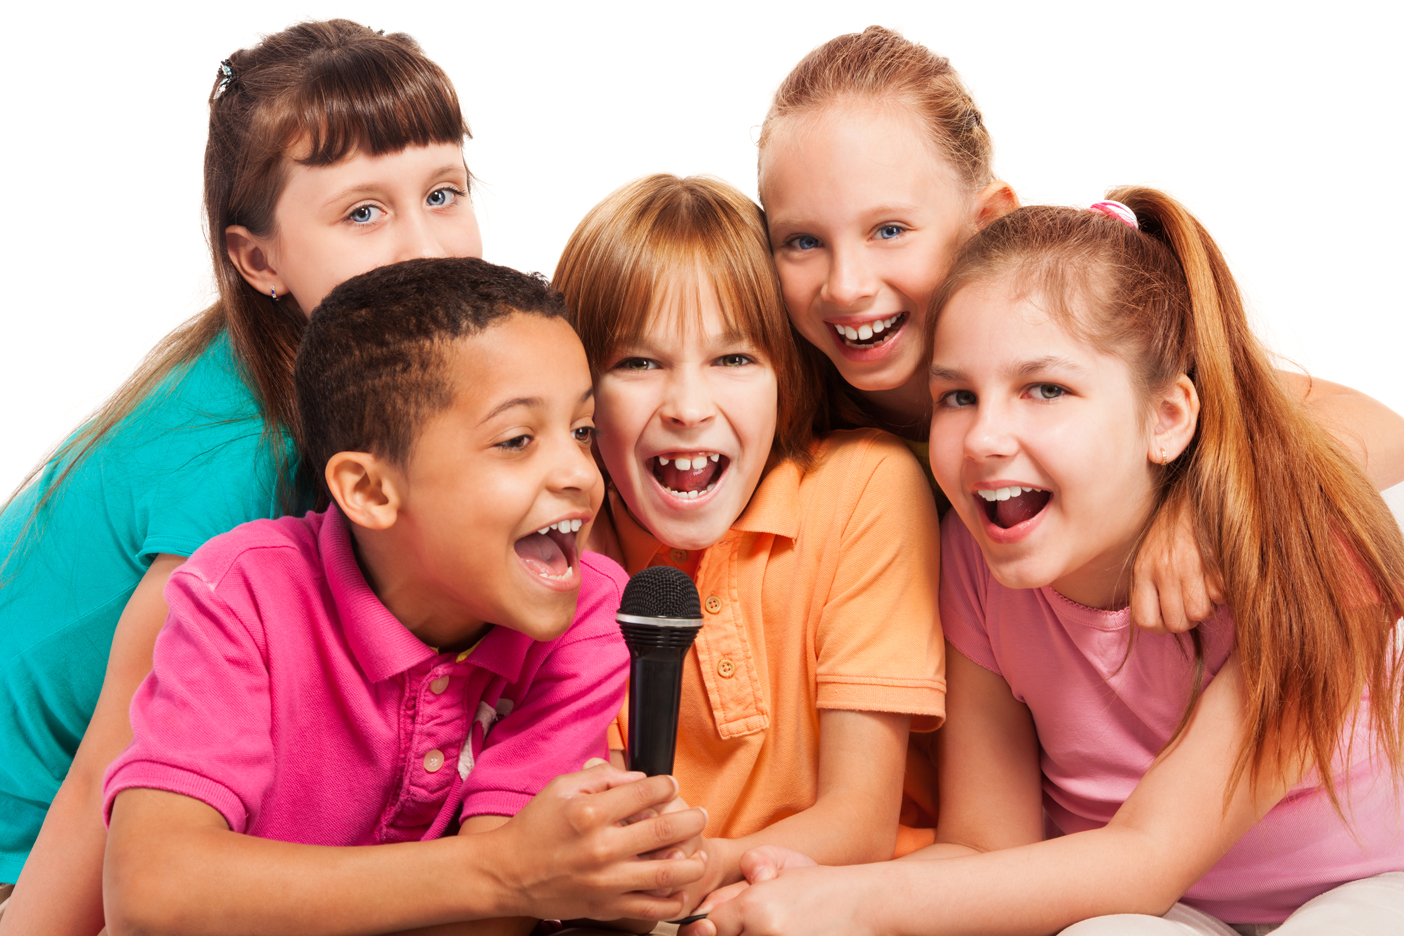 A Group of Children Singing Karaoke at a Party